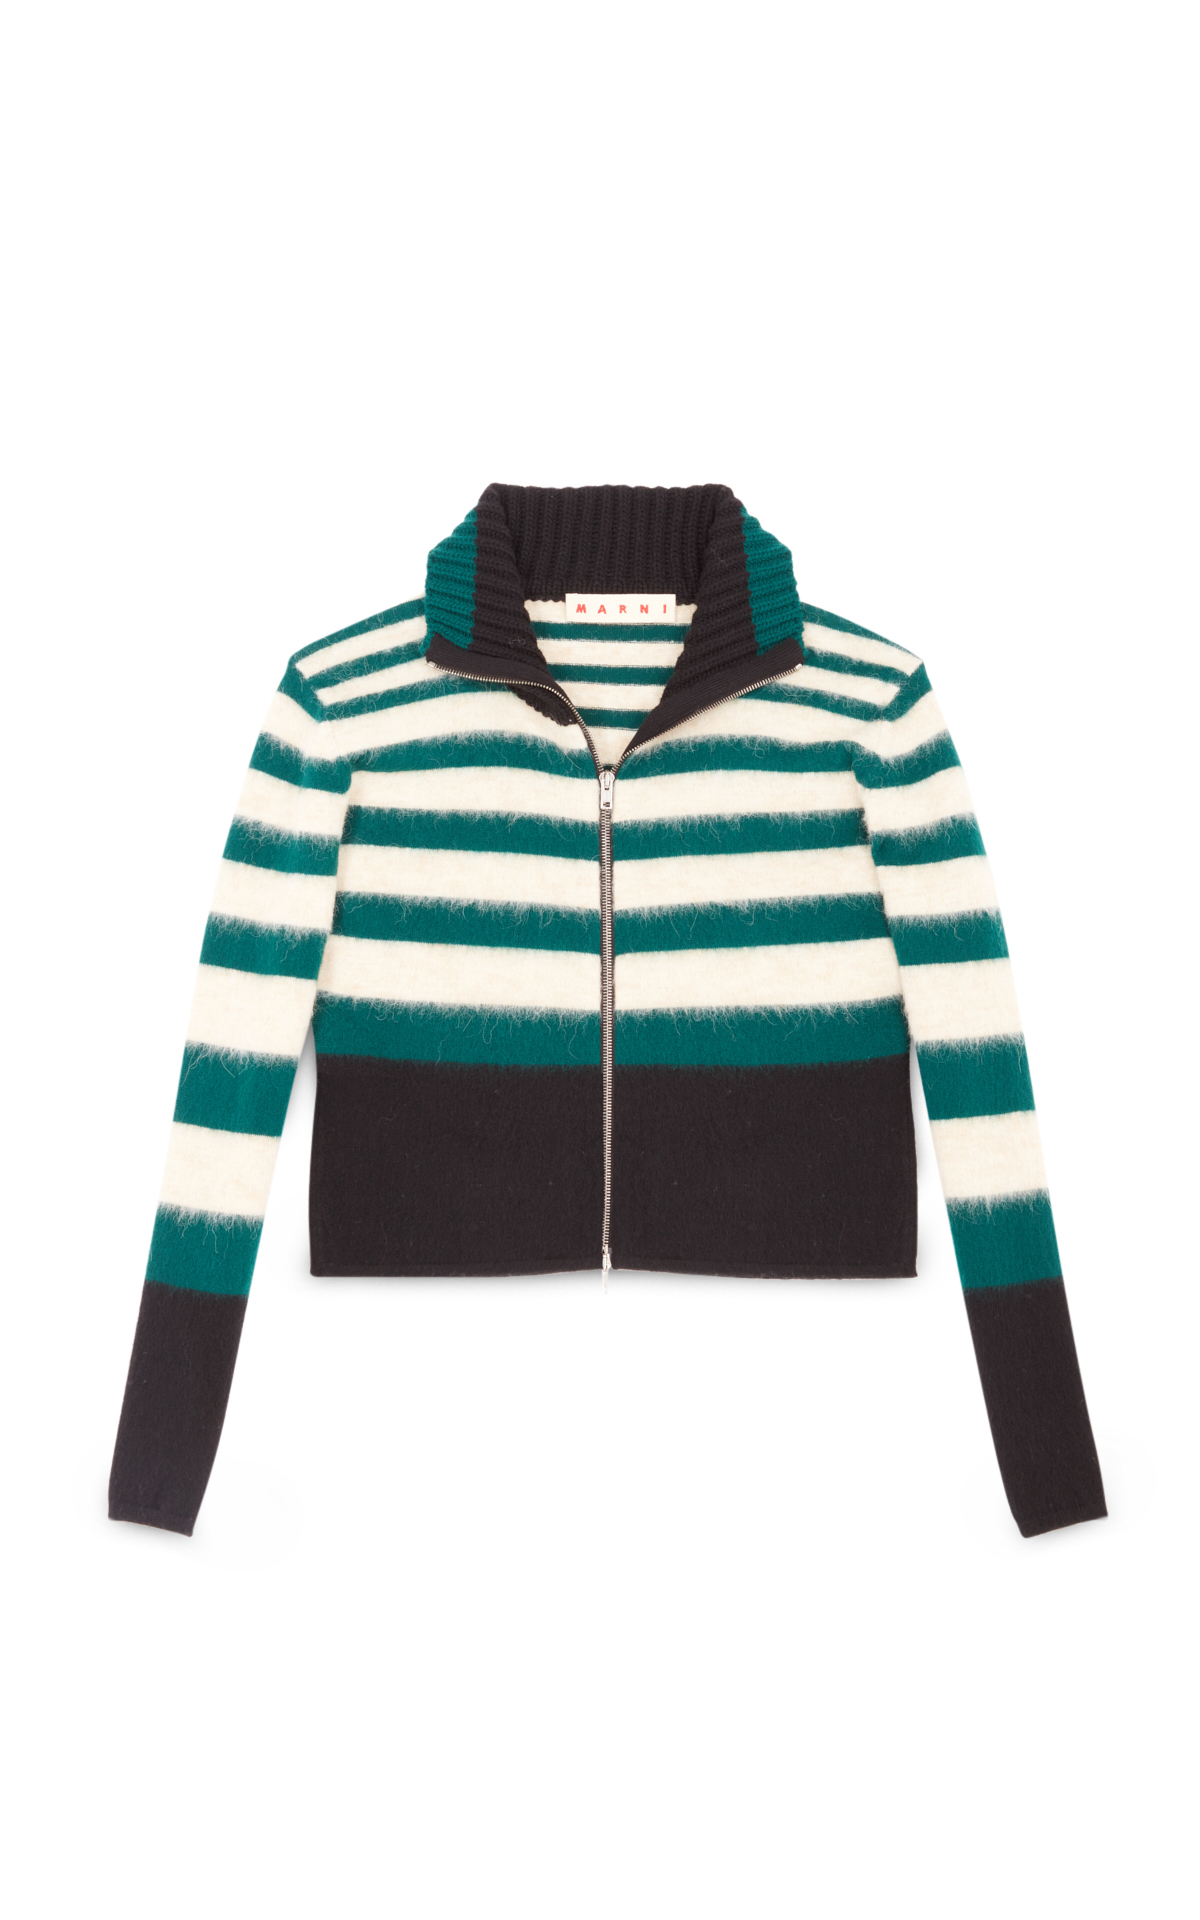 Marni Pull collection Wandering in Stripes*